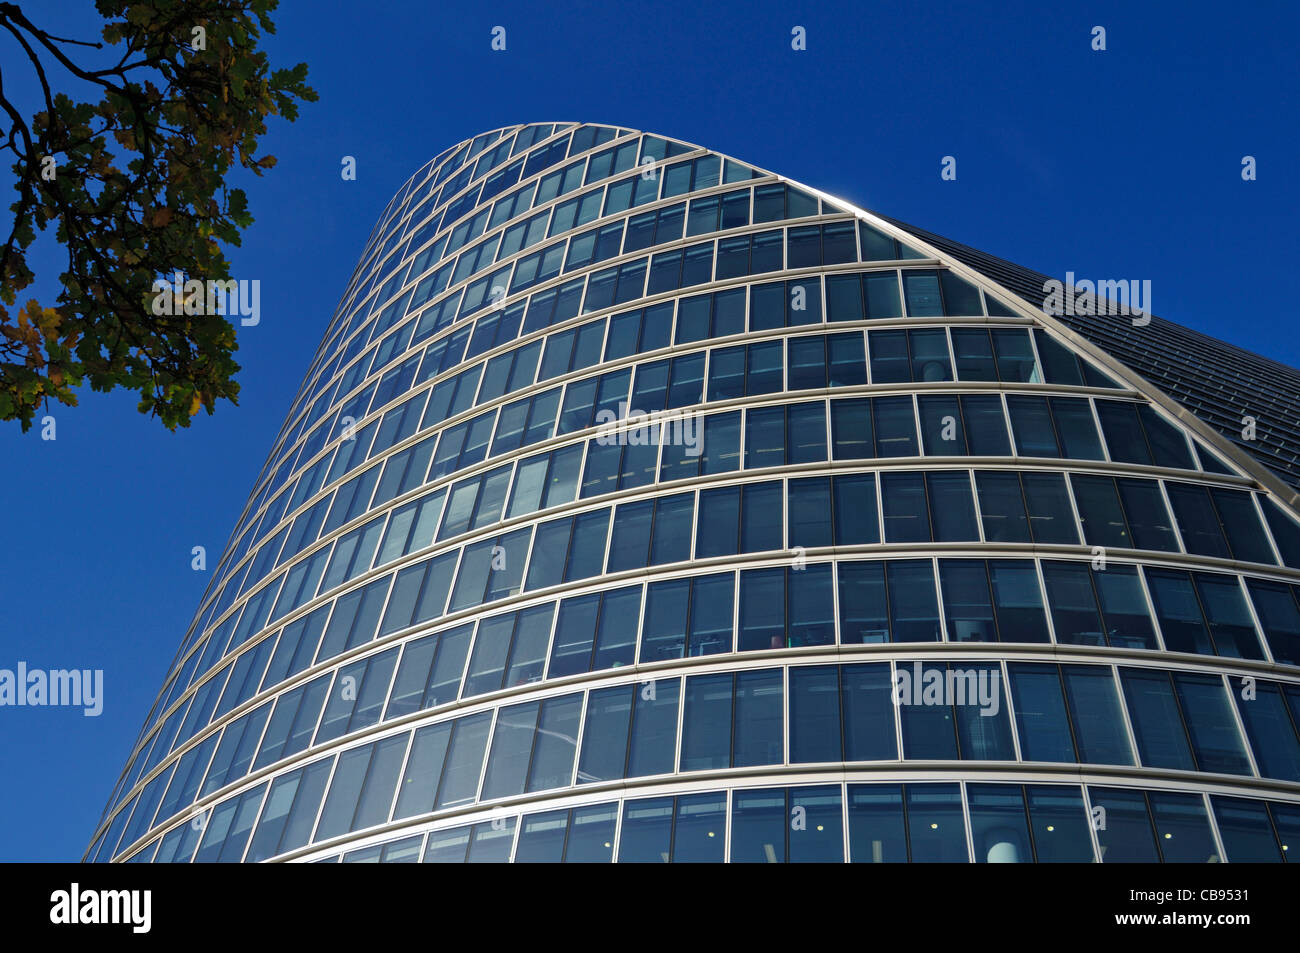 Moor House, 120 London Wall, London EC2, Uited Kingdom - Stock Image